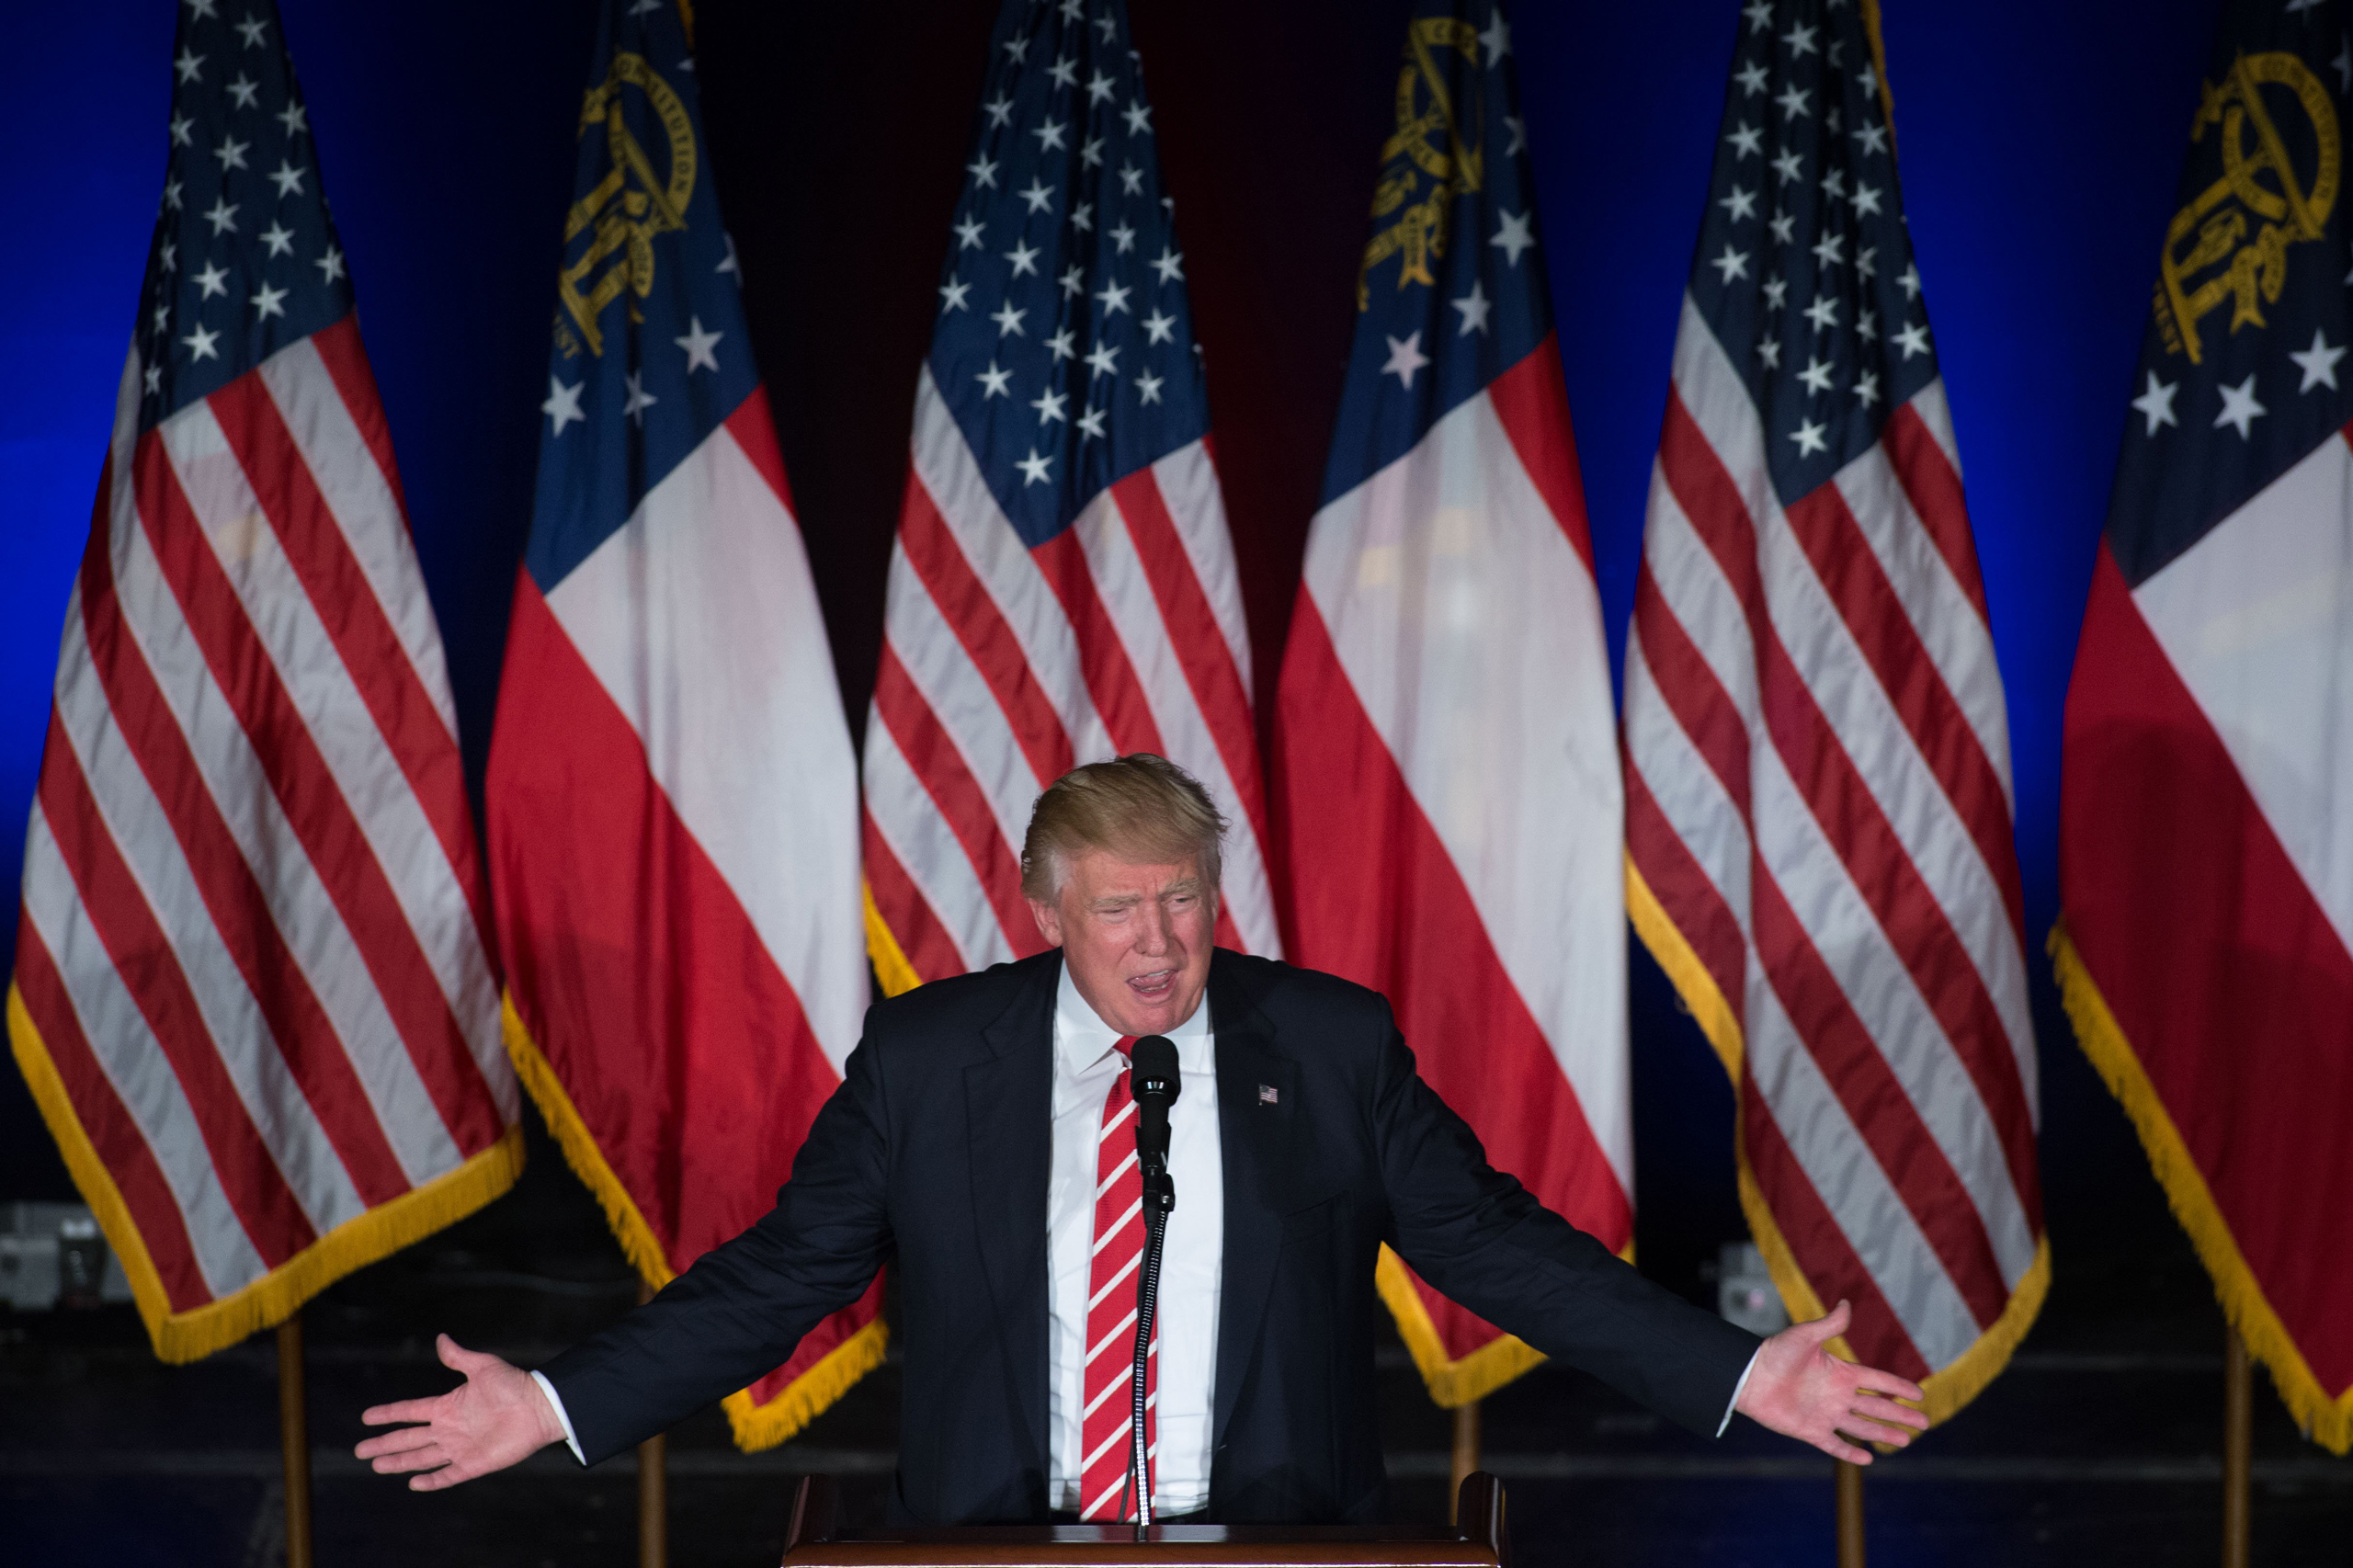 Republican presidential candidate Donald Trump speaks during a campaign rally at The Fox Theatre in Atlanta on June 15, 2016.